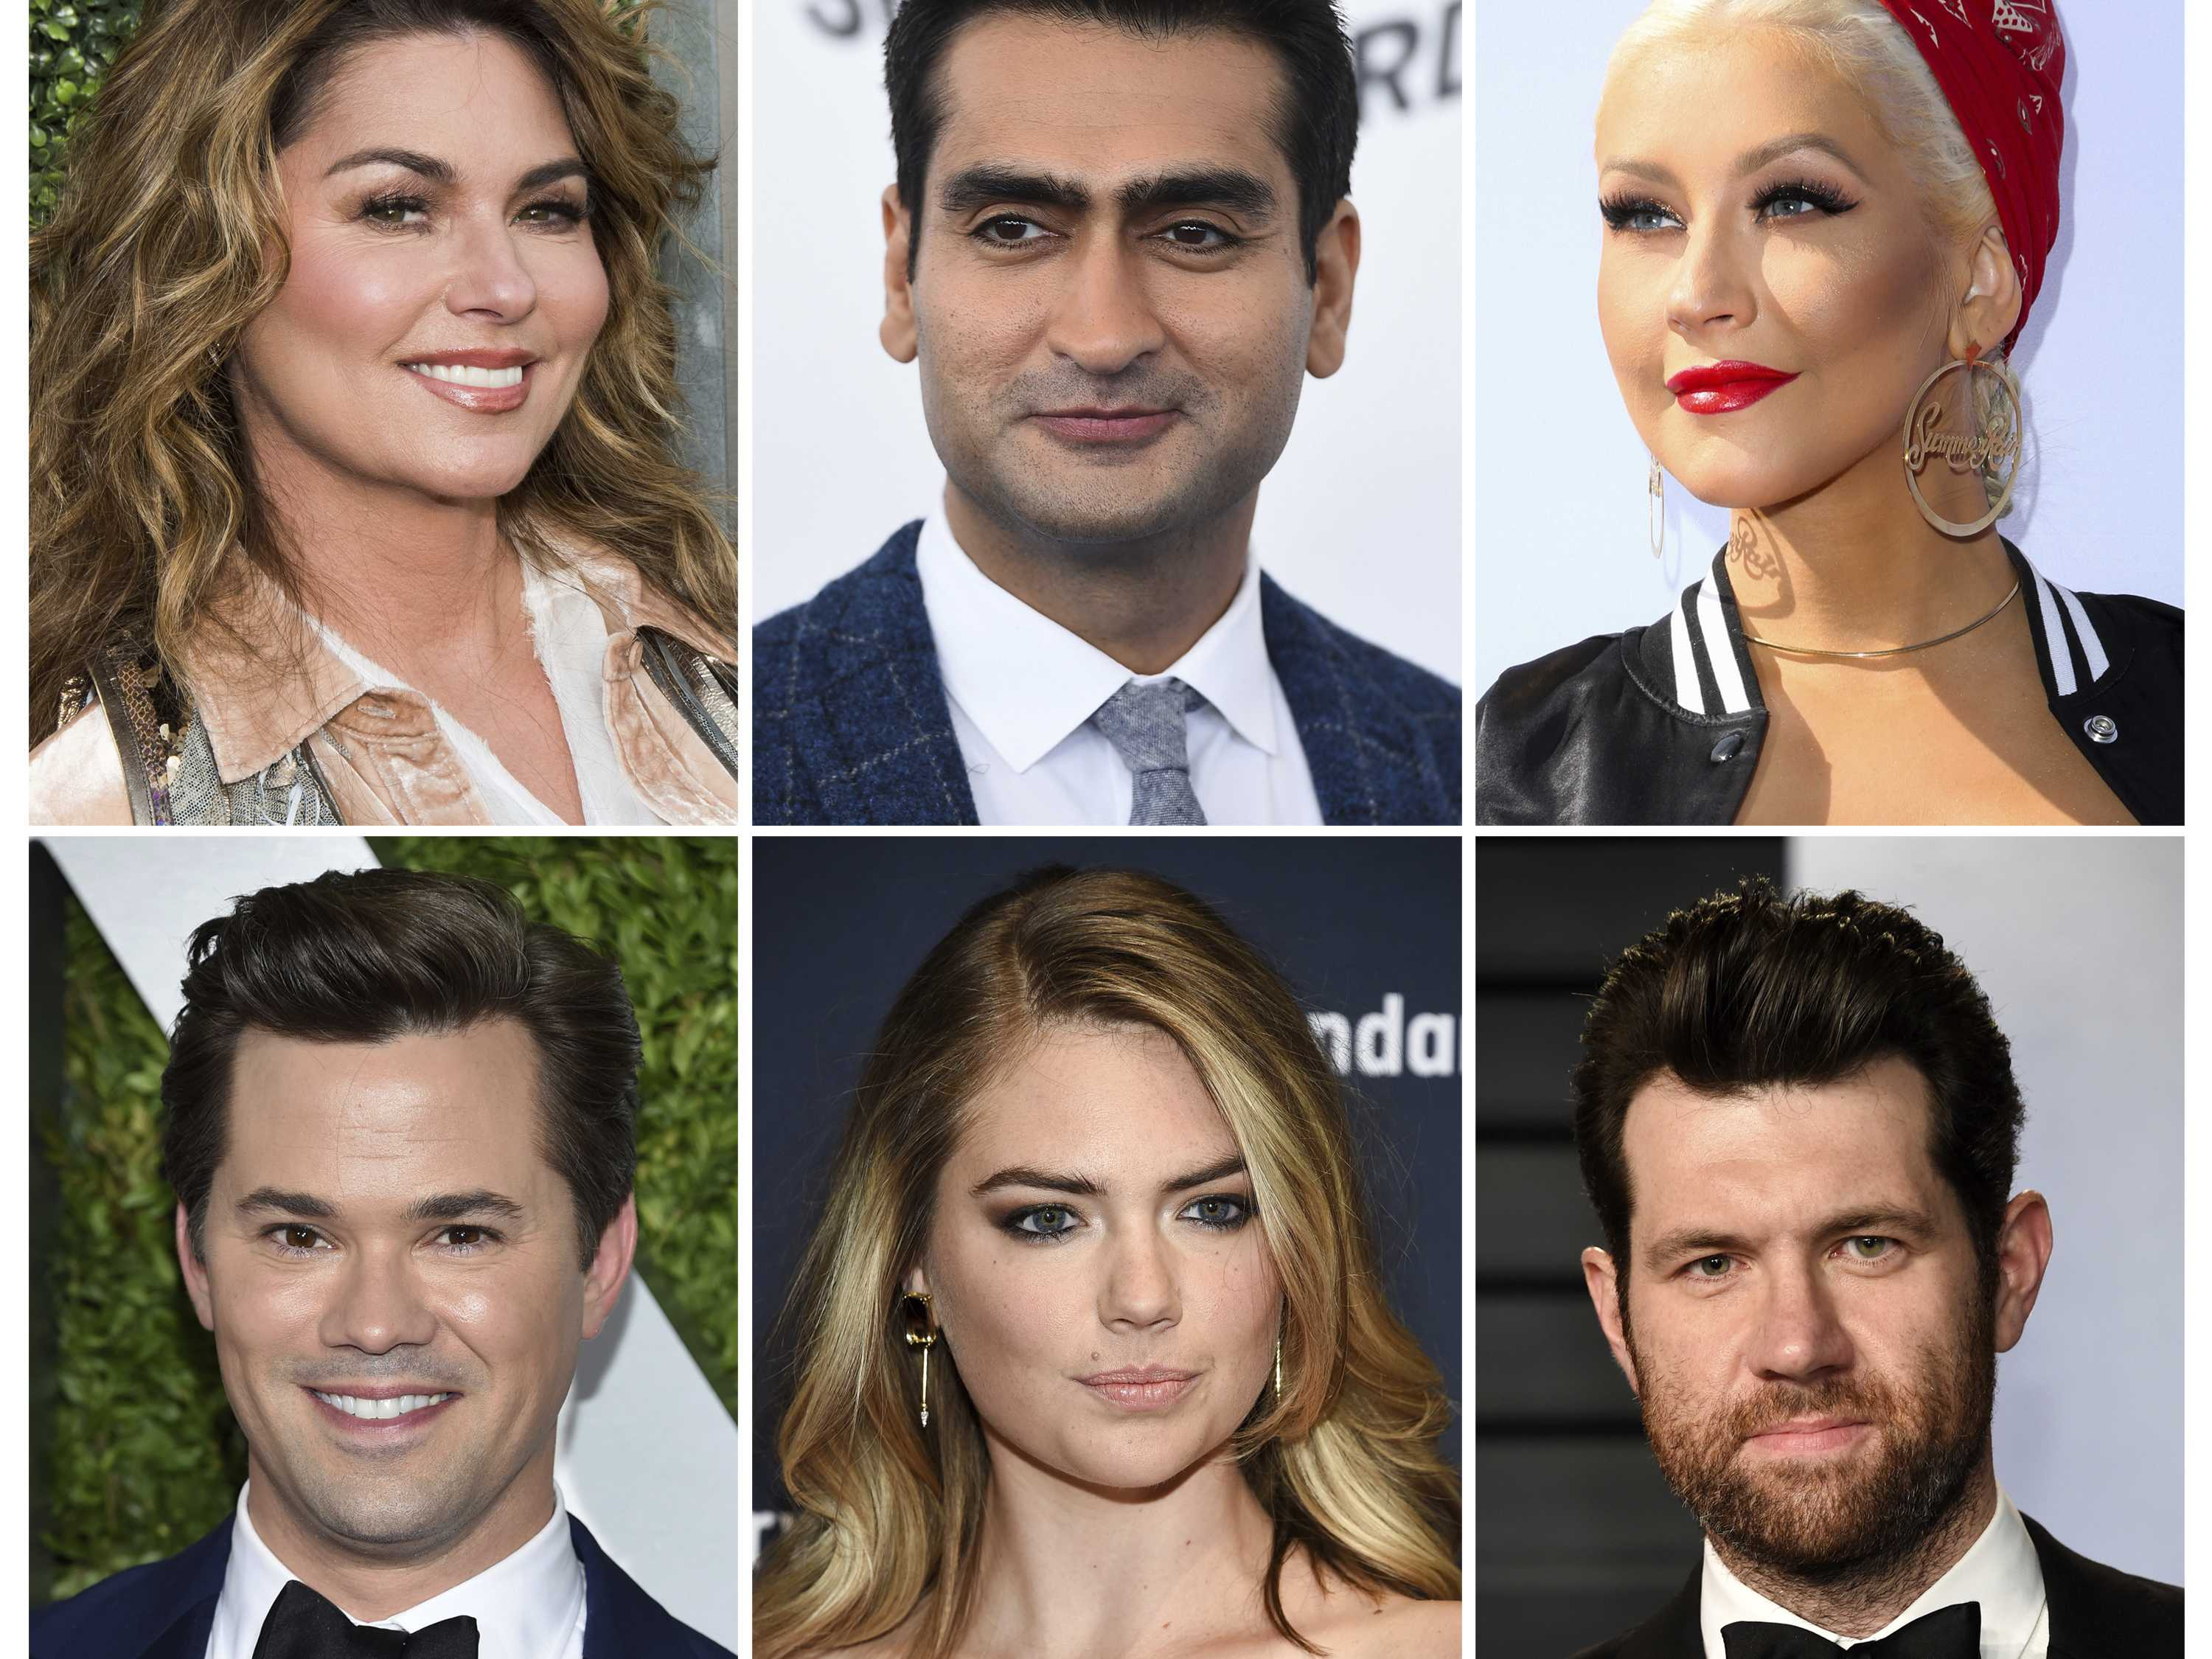 Shania Twain, Kate Upton to Guest on 'RuPaul's Drag Race'